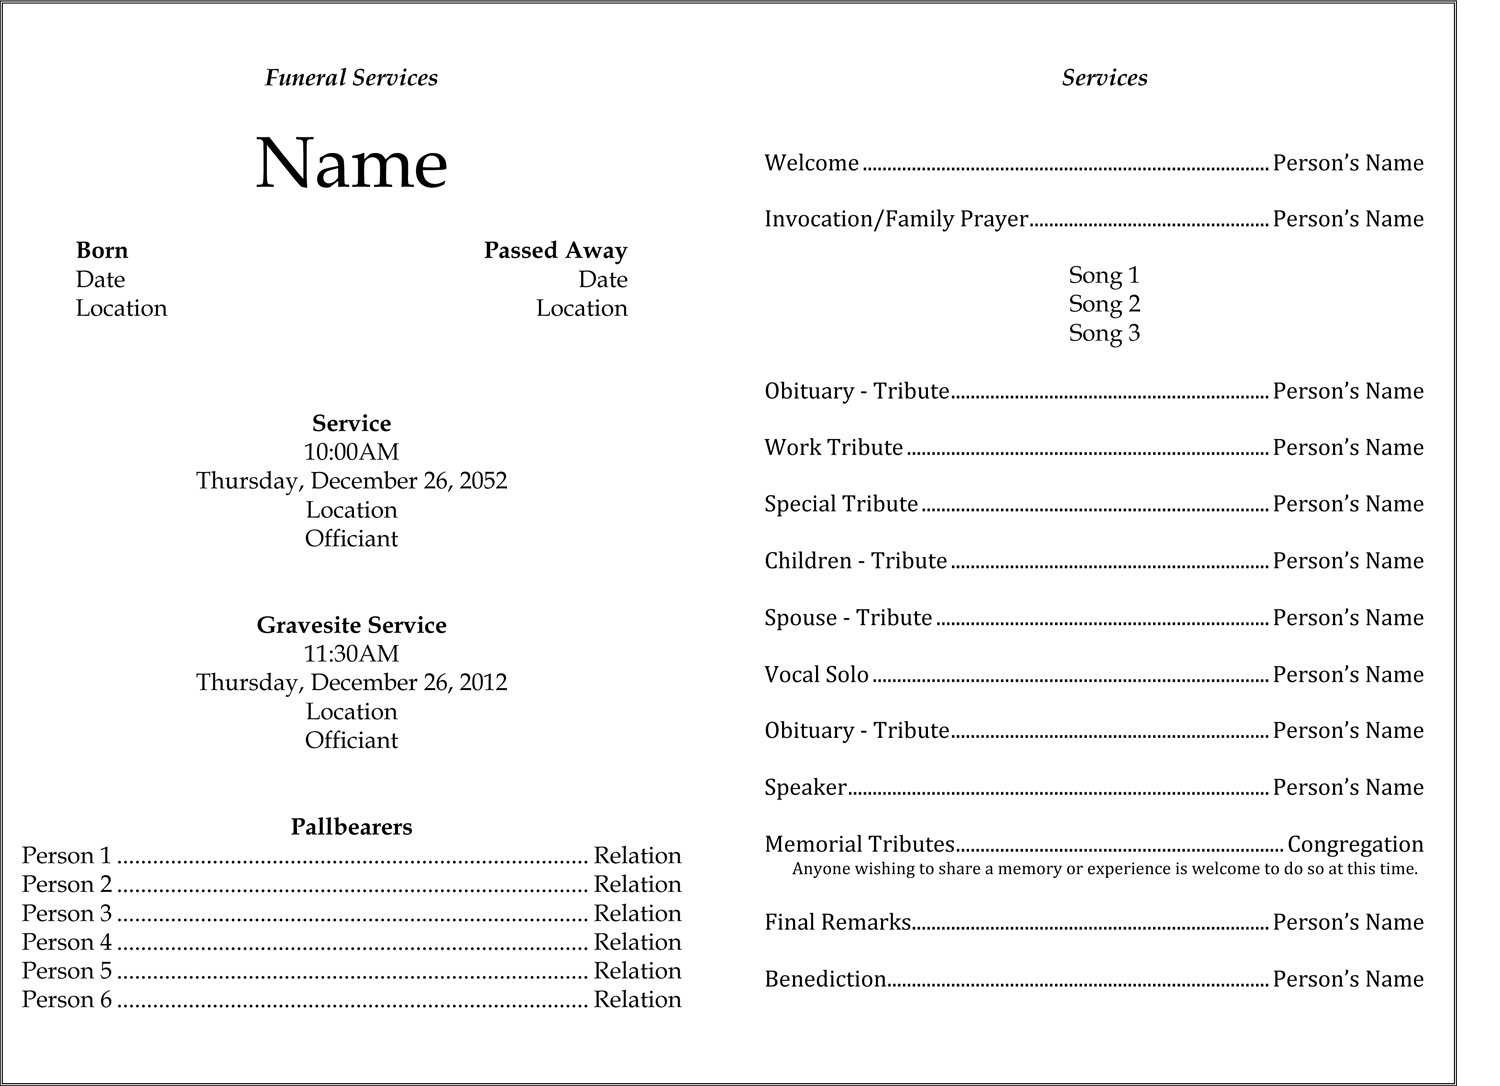 Funeral template edel alon heres a template i use for funeralmemorial services maxwellsz